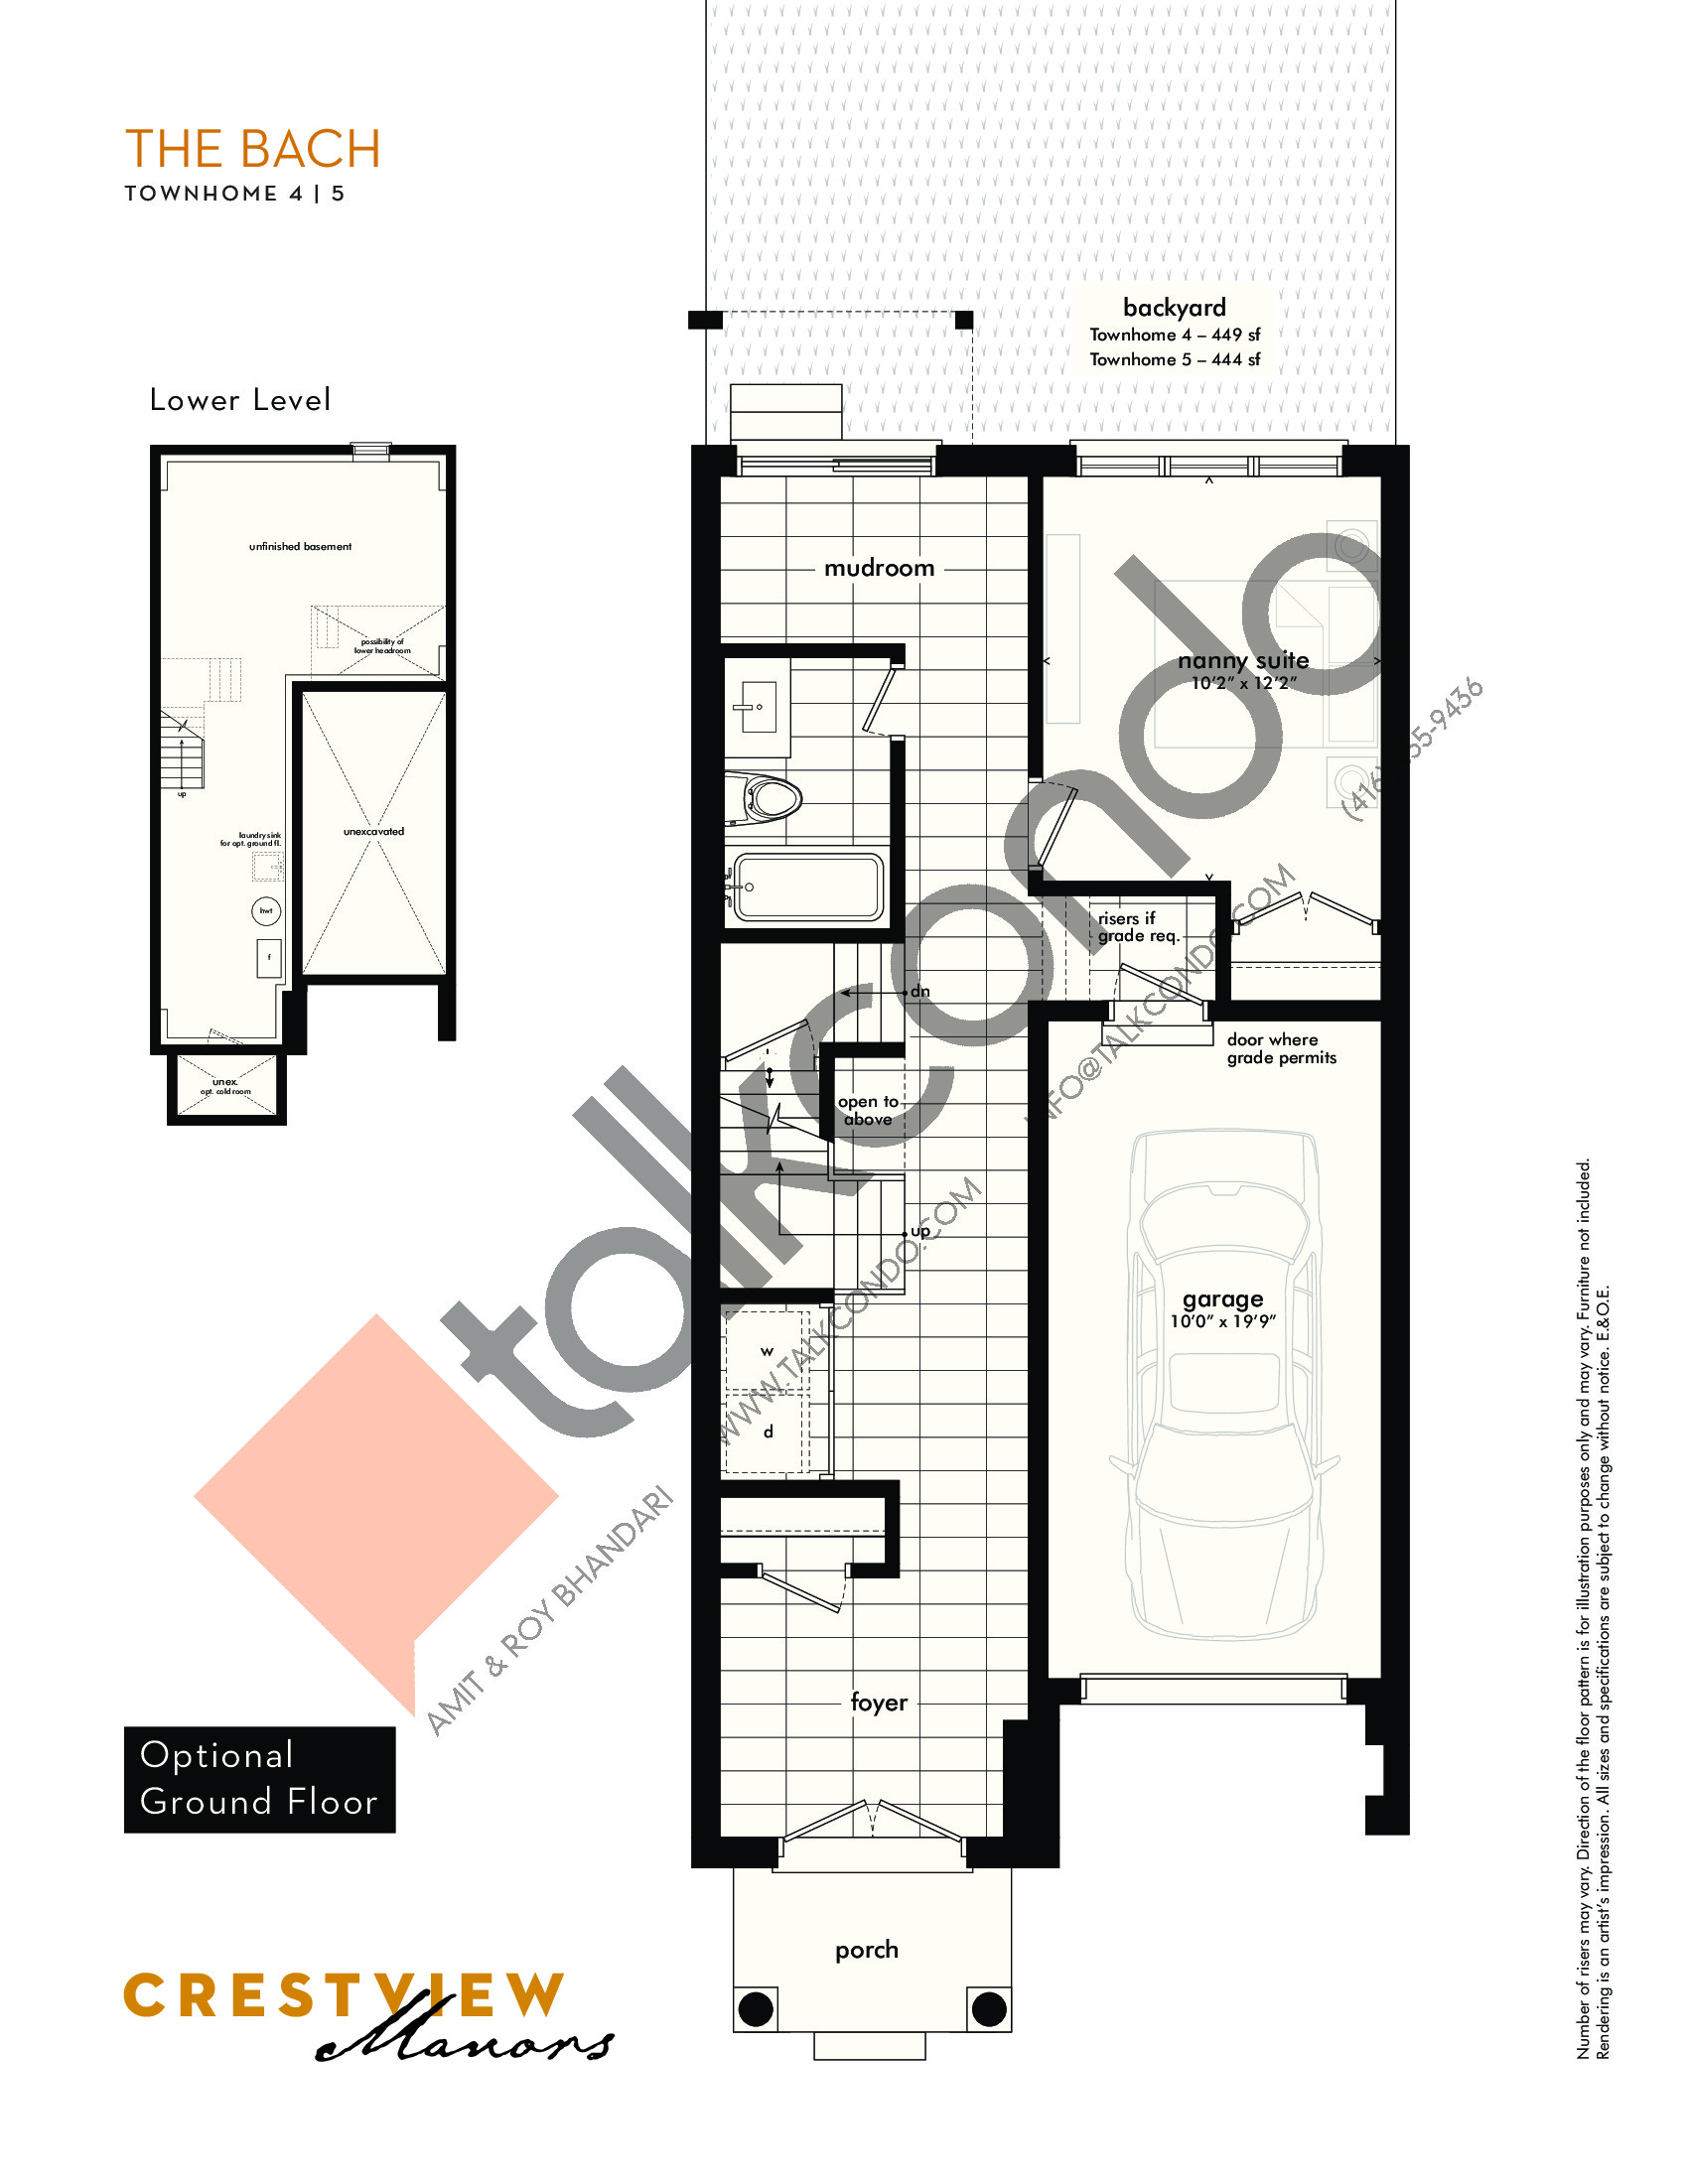 The Bach - Optional Ground Floor Floor Plan at Crestview Manors - 2333 sq.ft